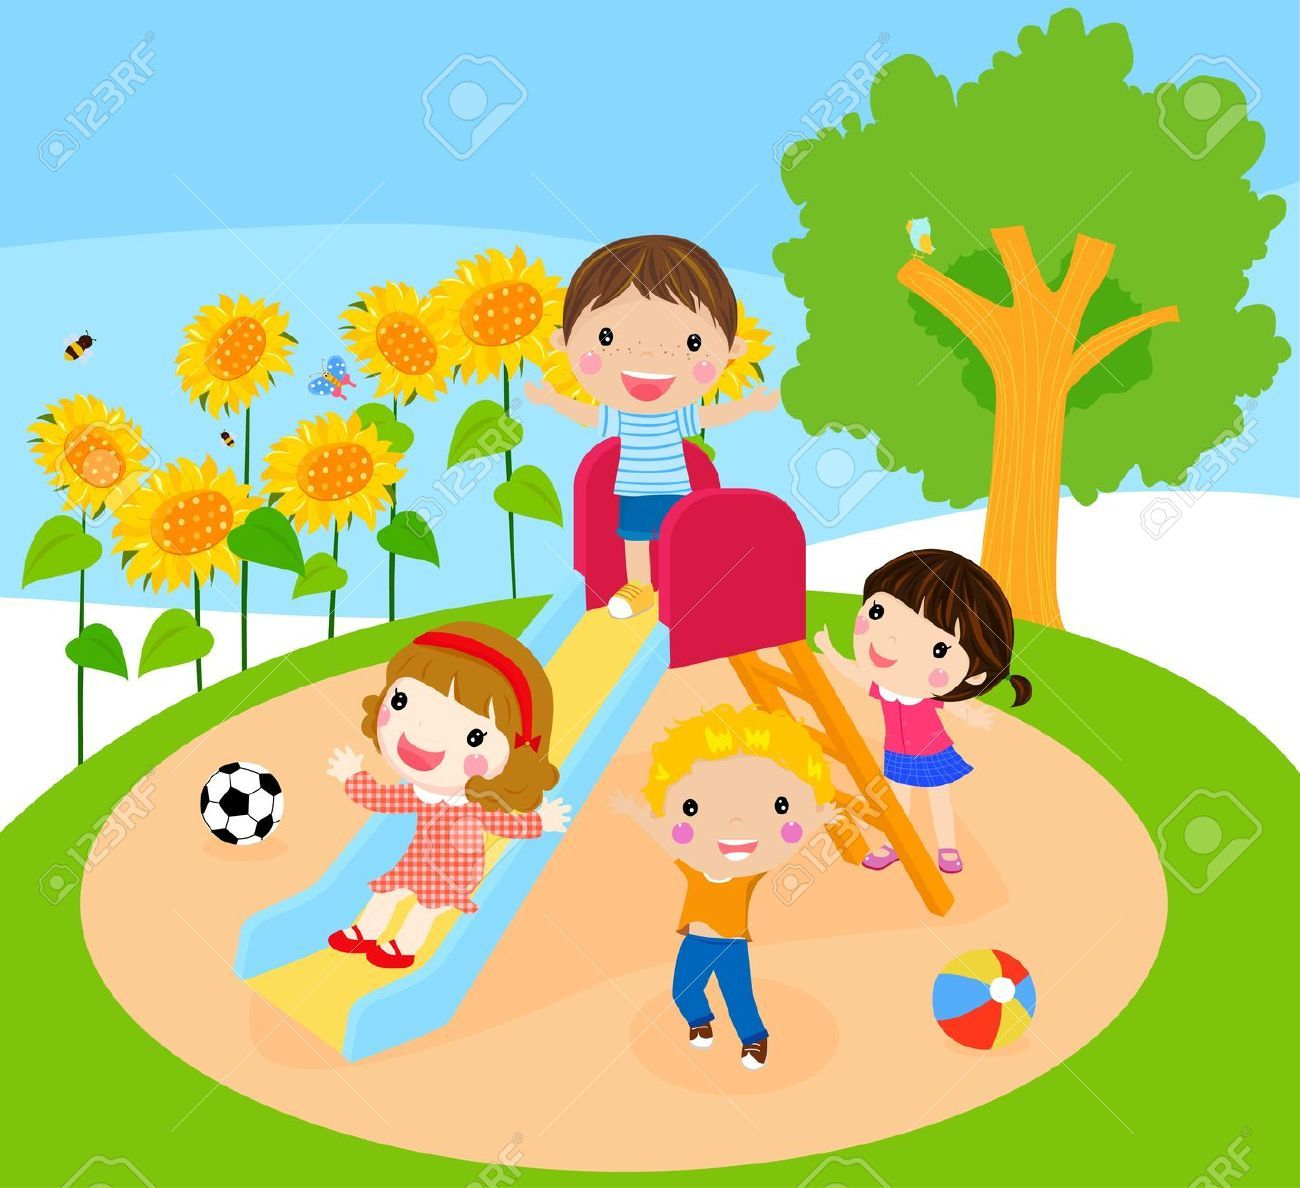 cute children playing illustrations - google search | picture